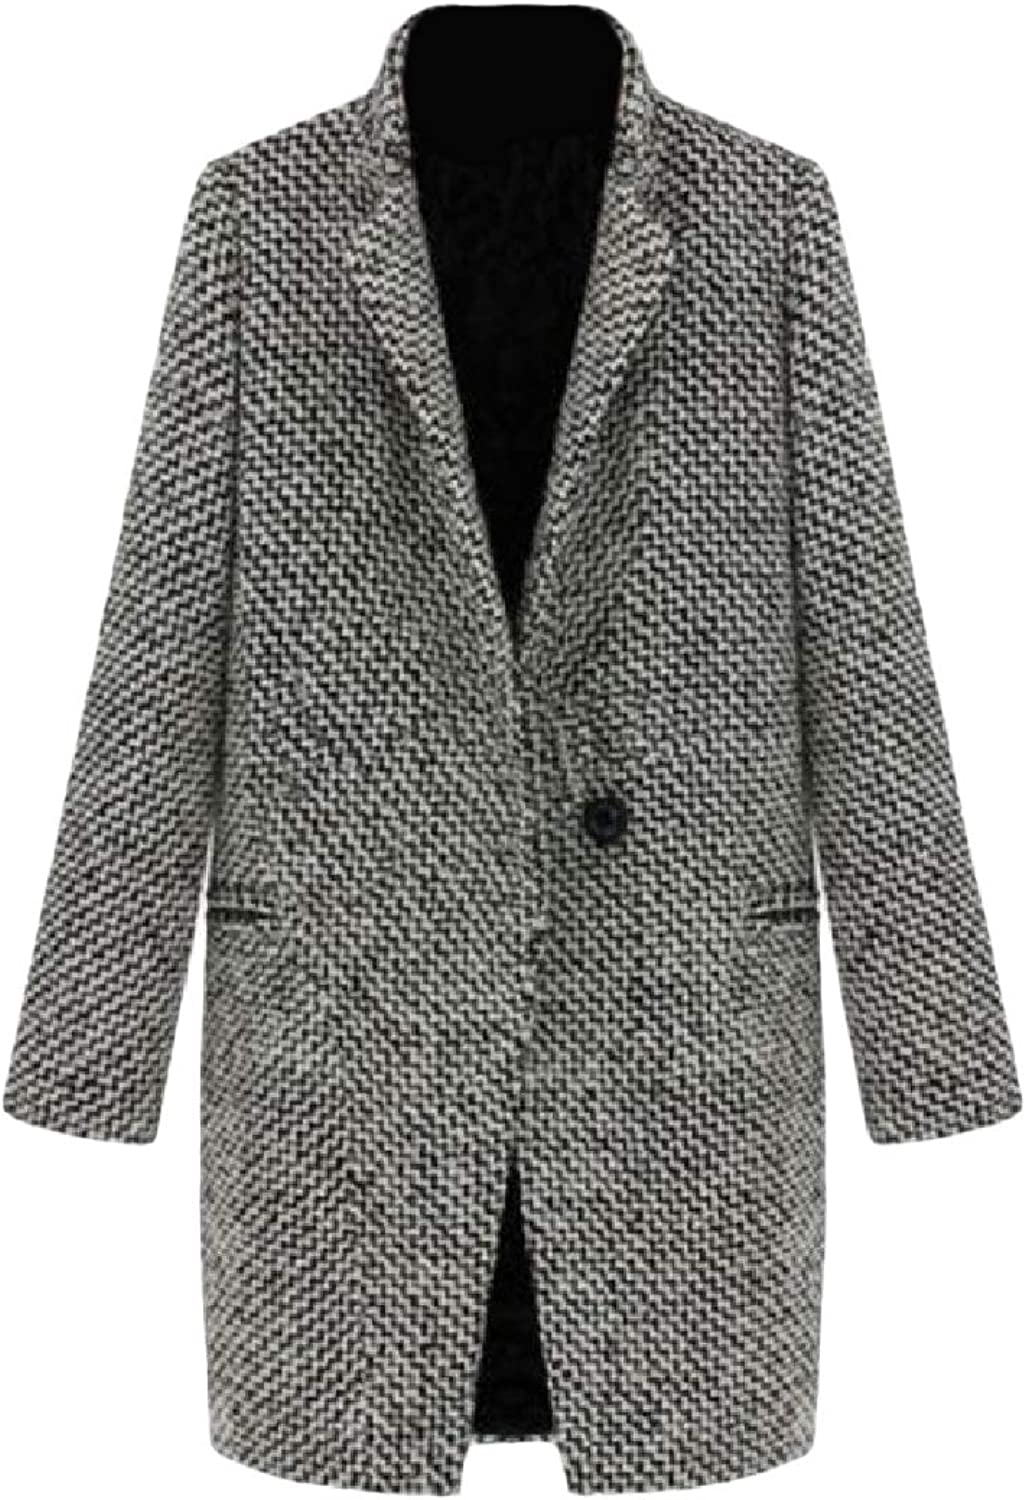 color&W Womens Fall Winter One Button Thick Turn Down Collar Trench Coat Outwear